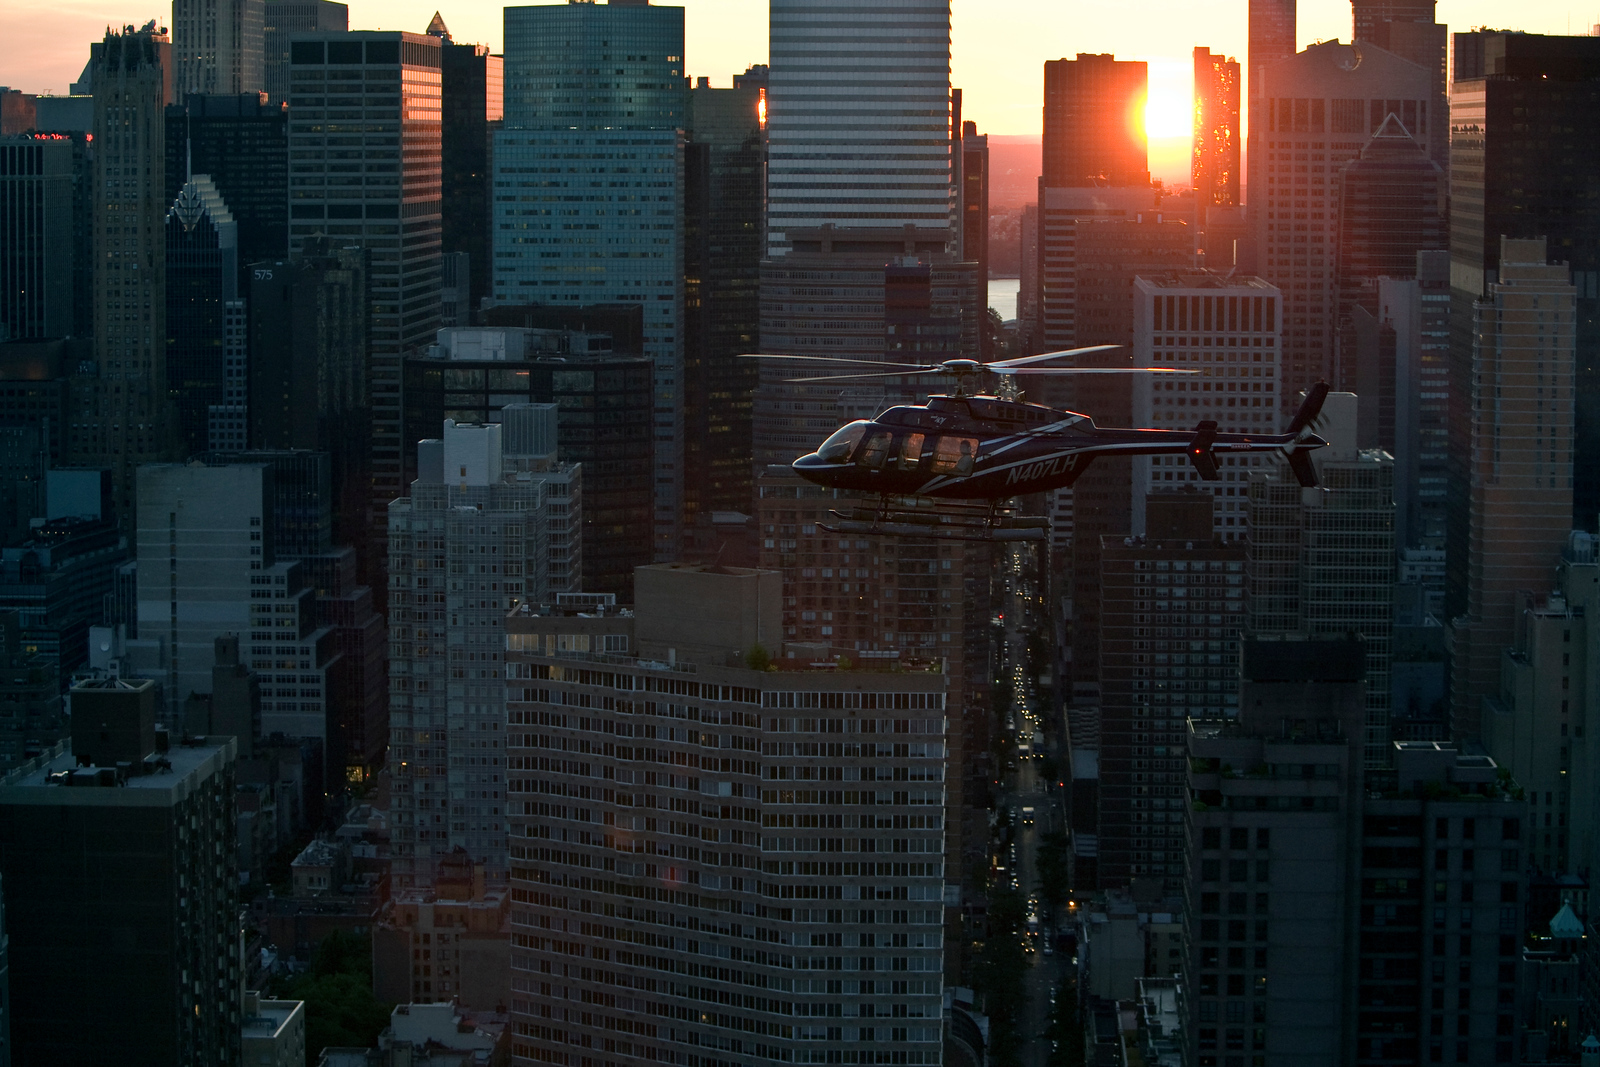 HelicopterFlightServices07-02-2007_D9Z1935